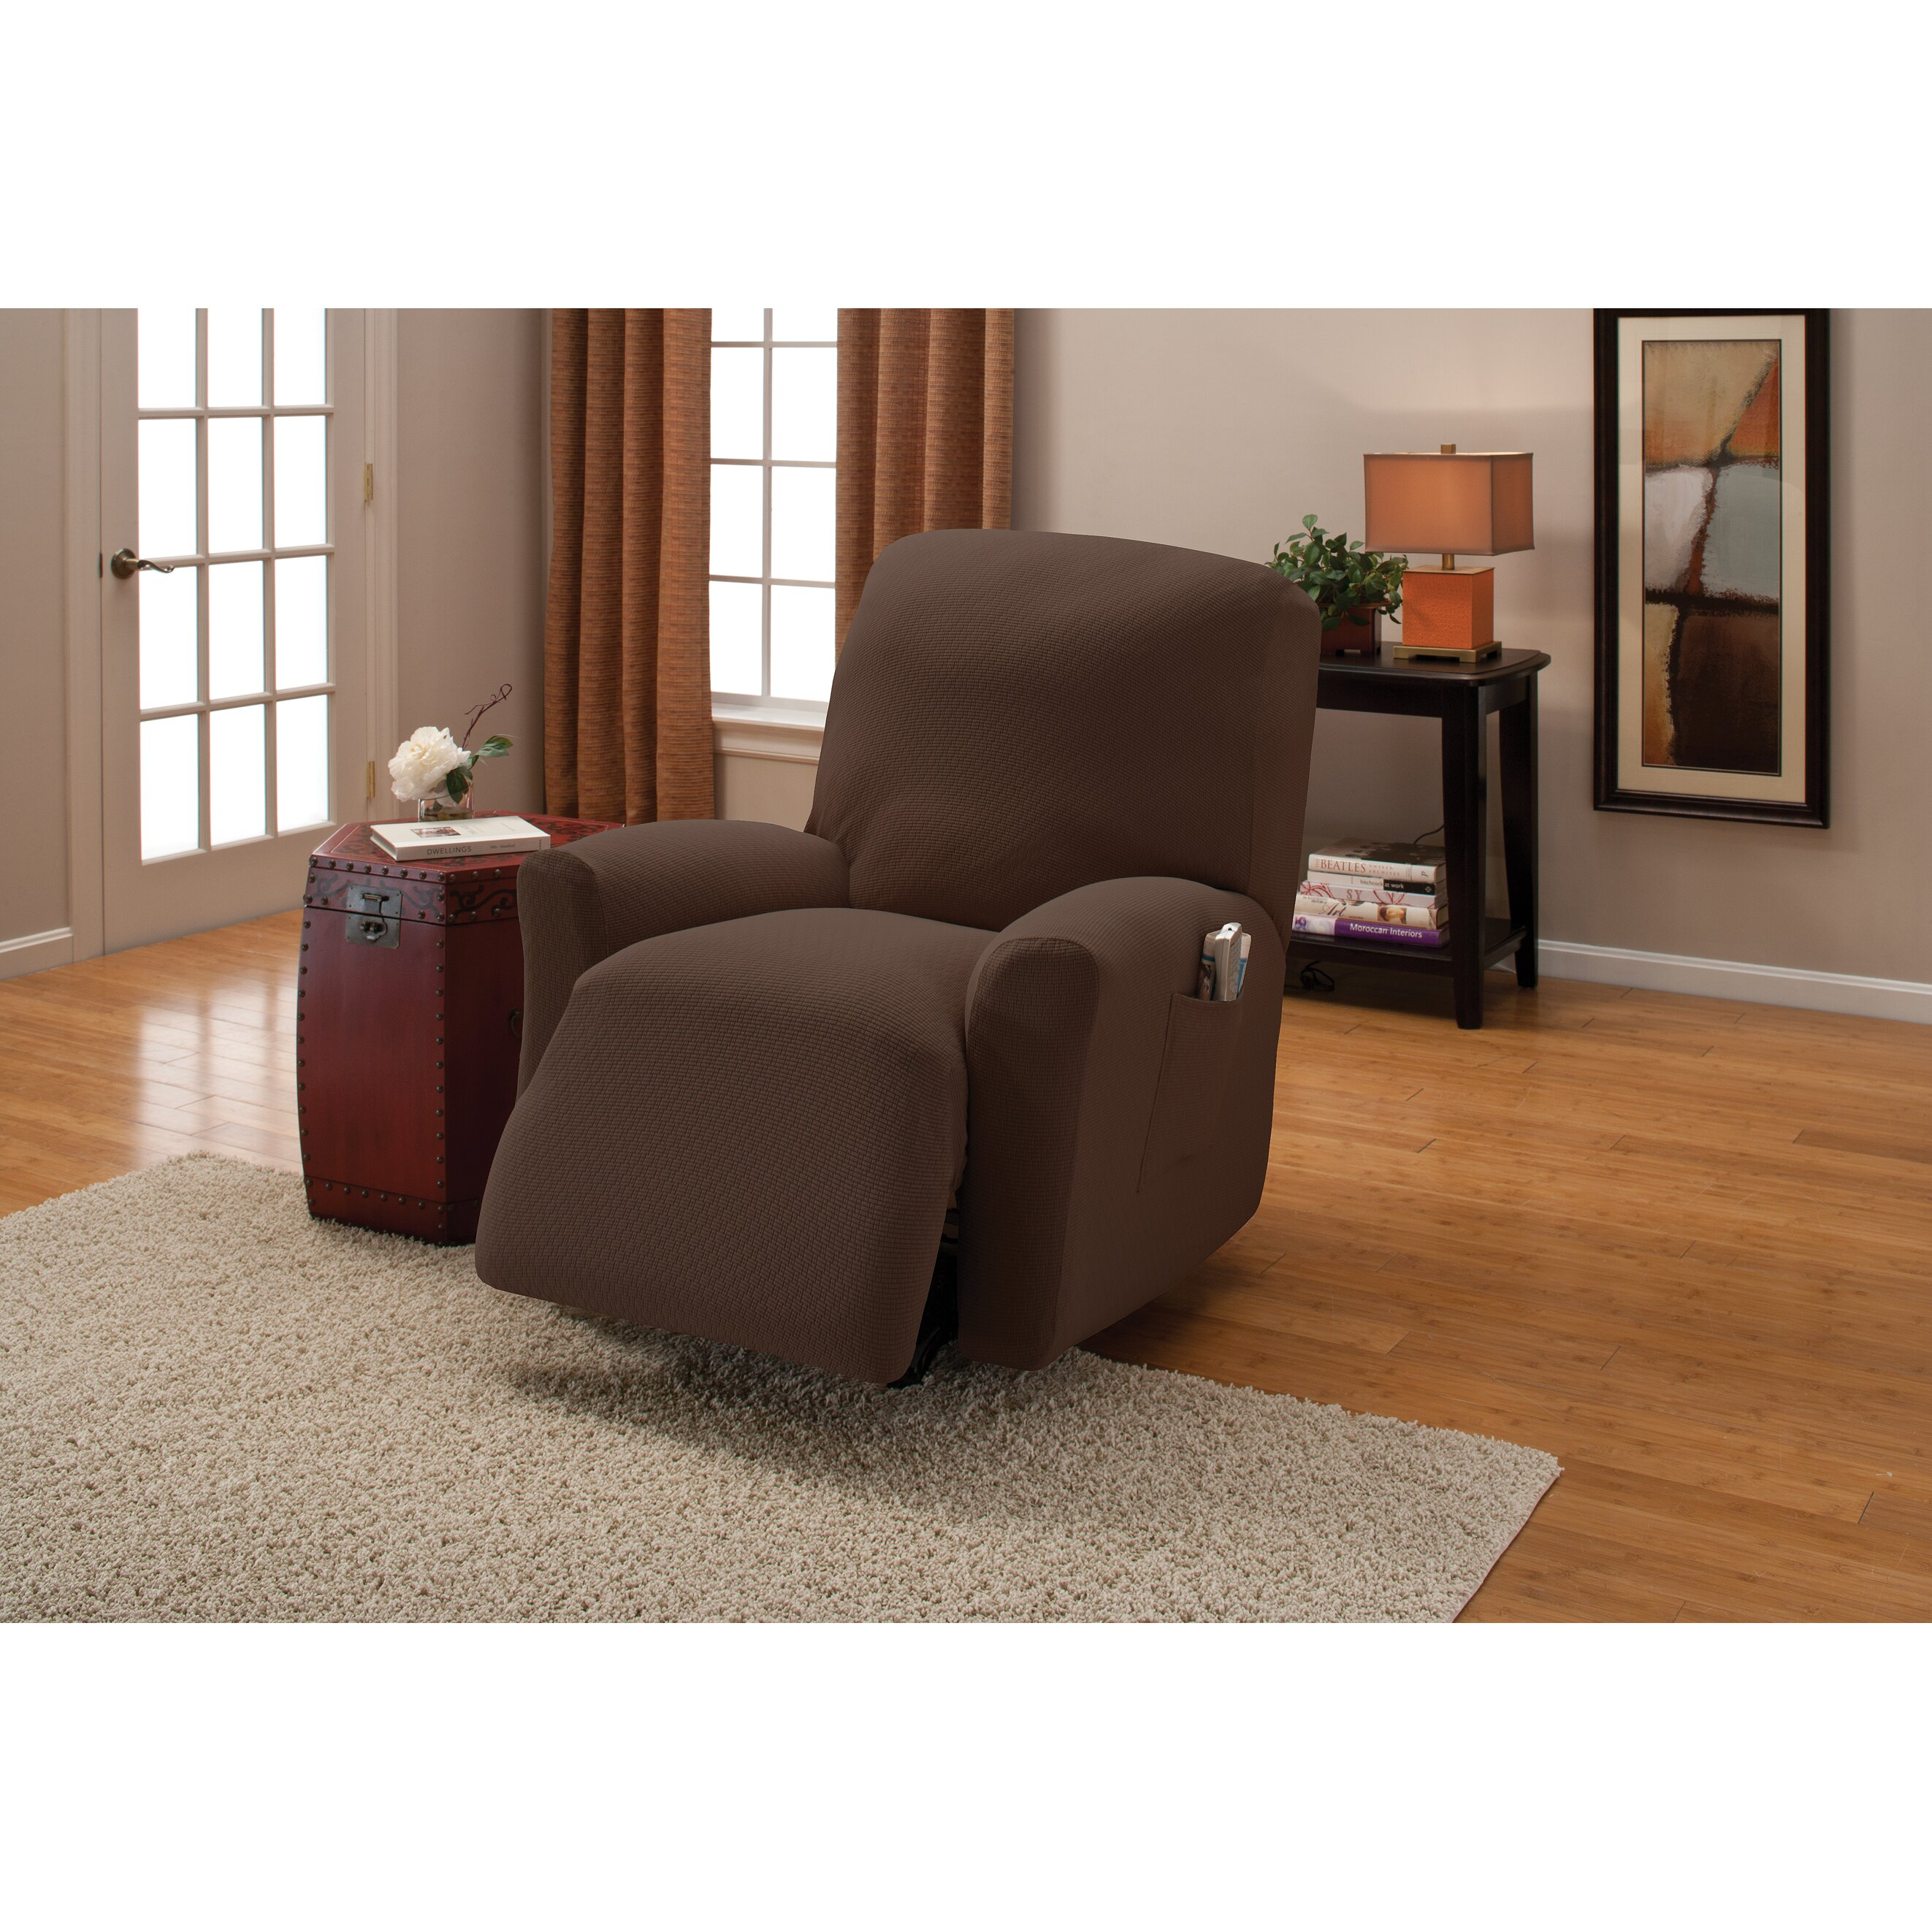 red barrel studio auburn road recliner slipcover reviews